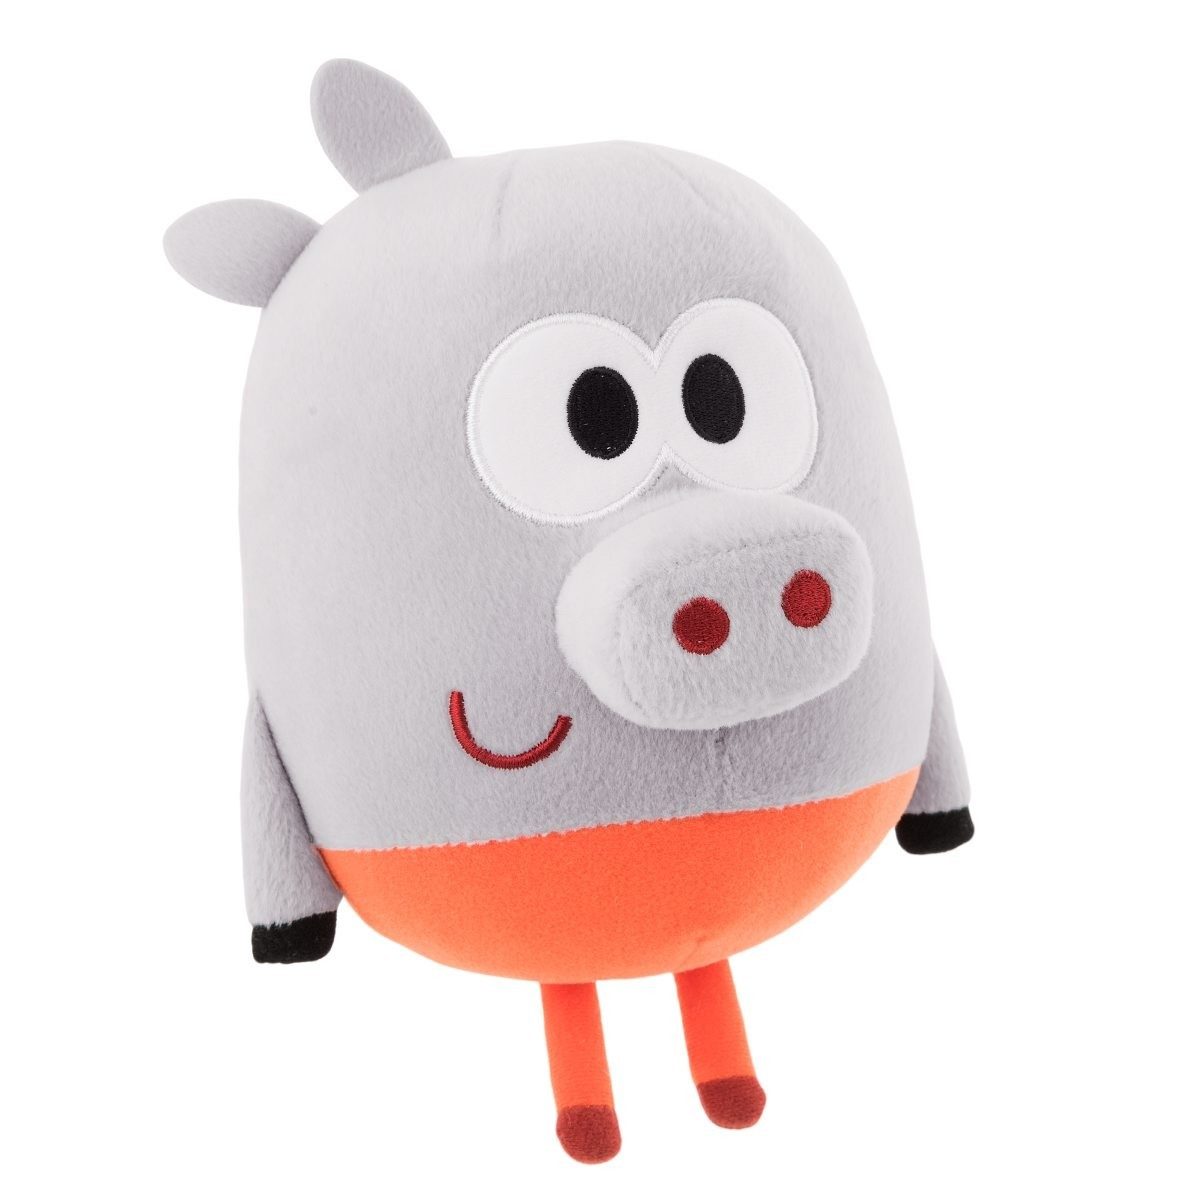 Image of Peluche Roly Parlante Chicco